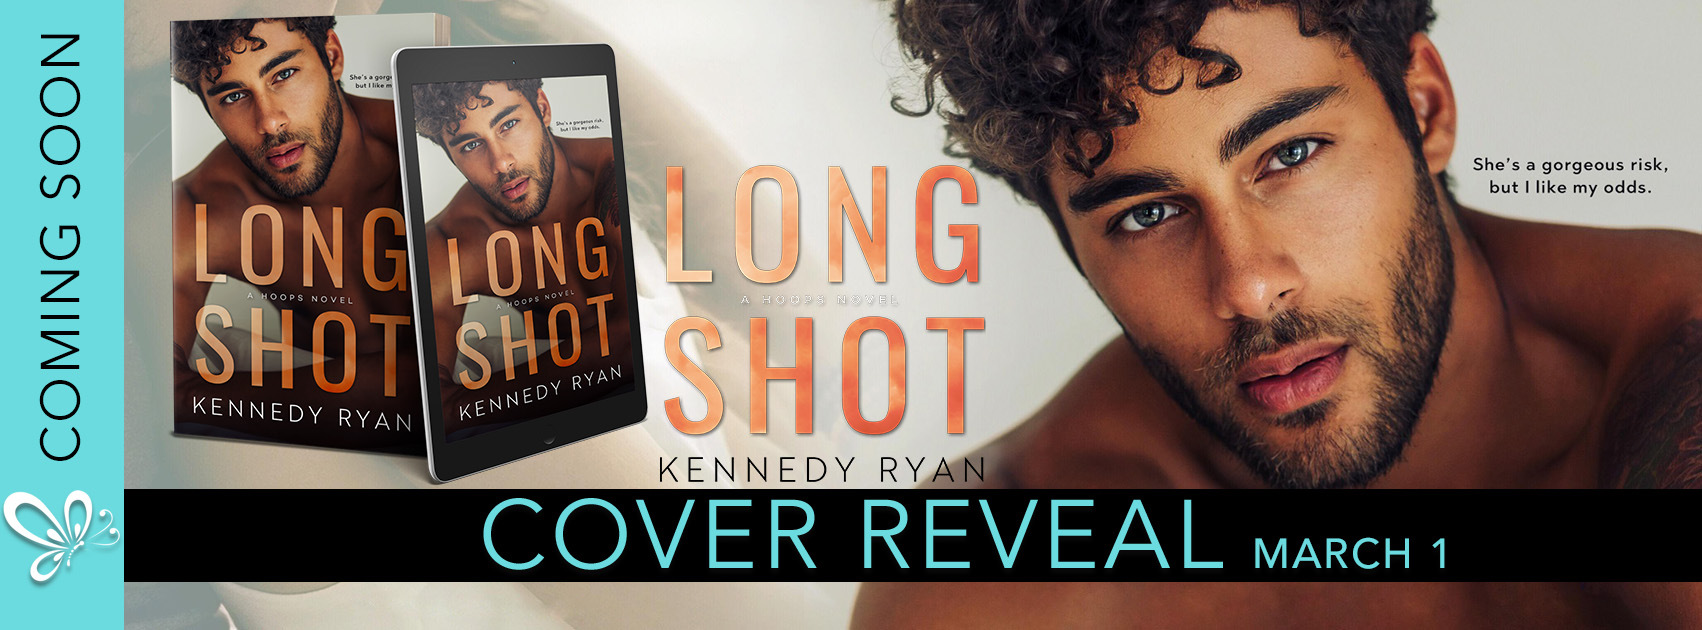 COVER REVEAL! Long Shot by Kennedy Ryan